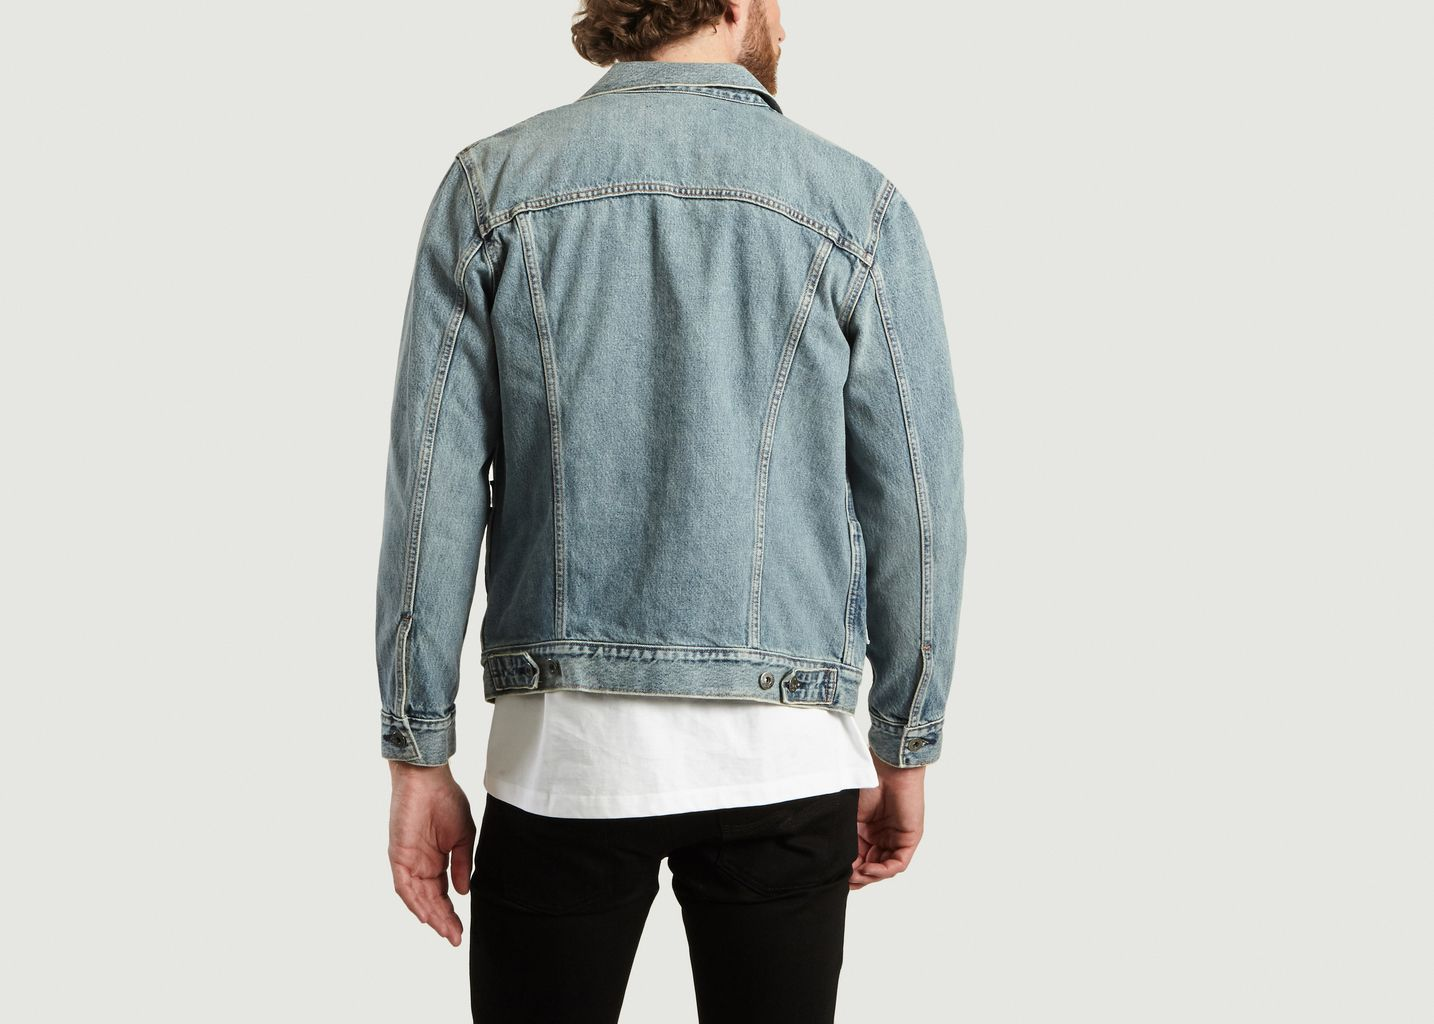 Worn Trucker Type II - Levi's Made and Crafted